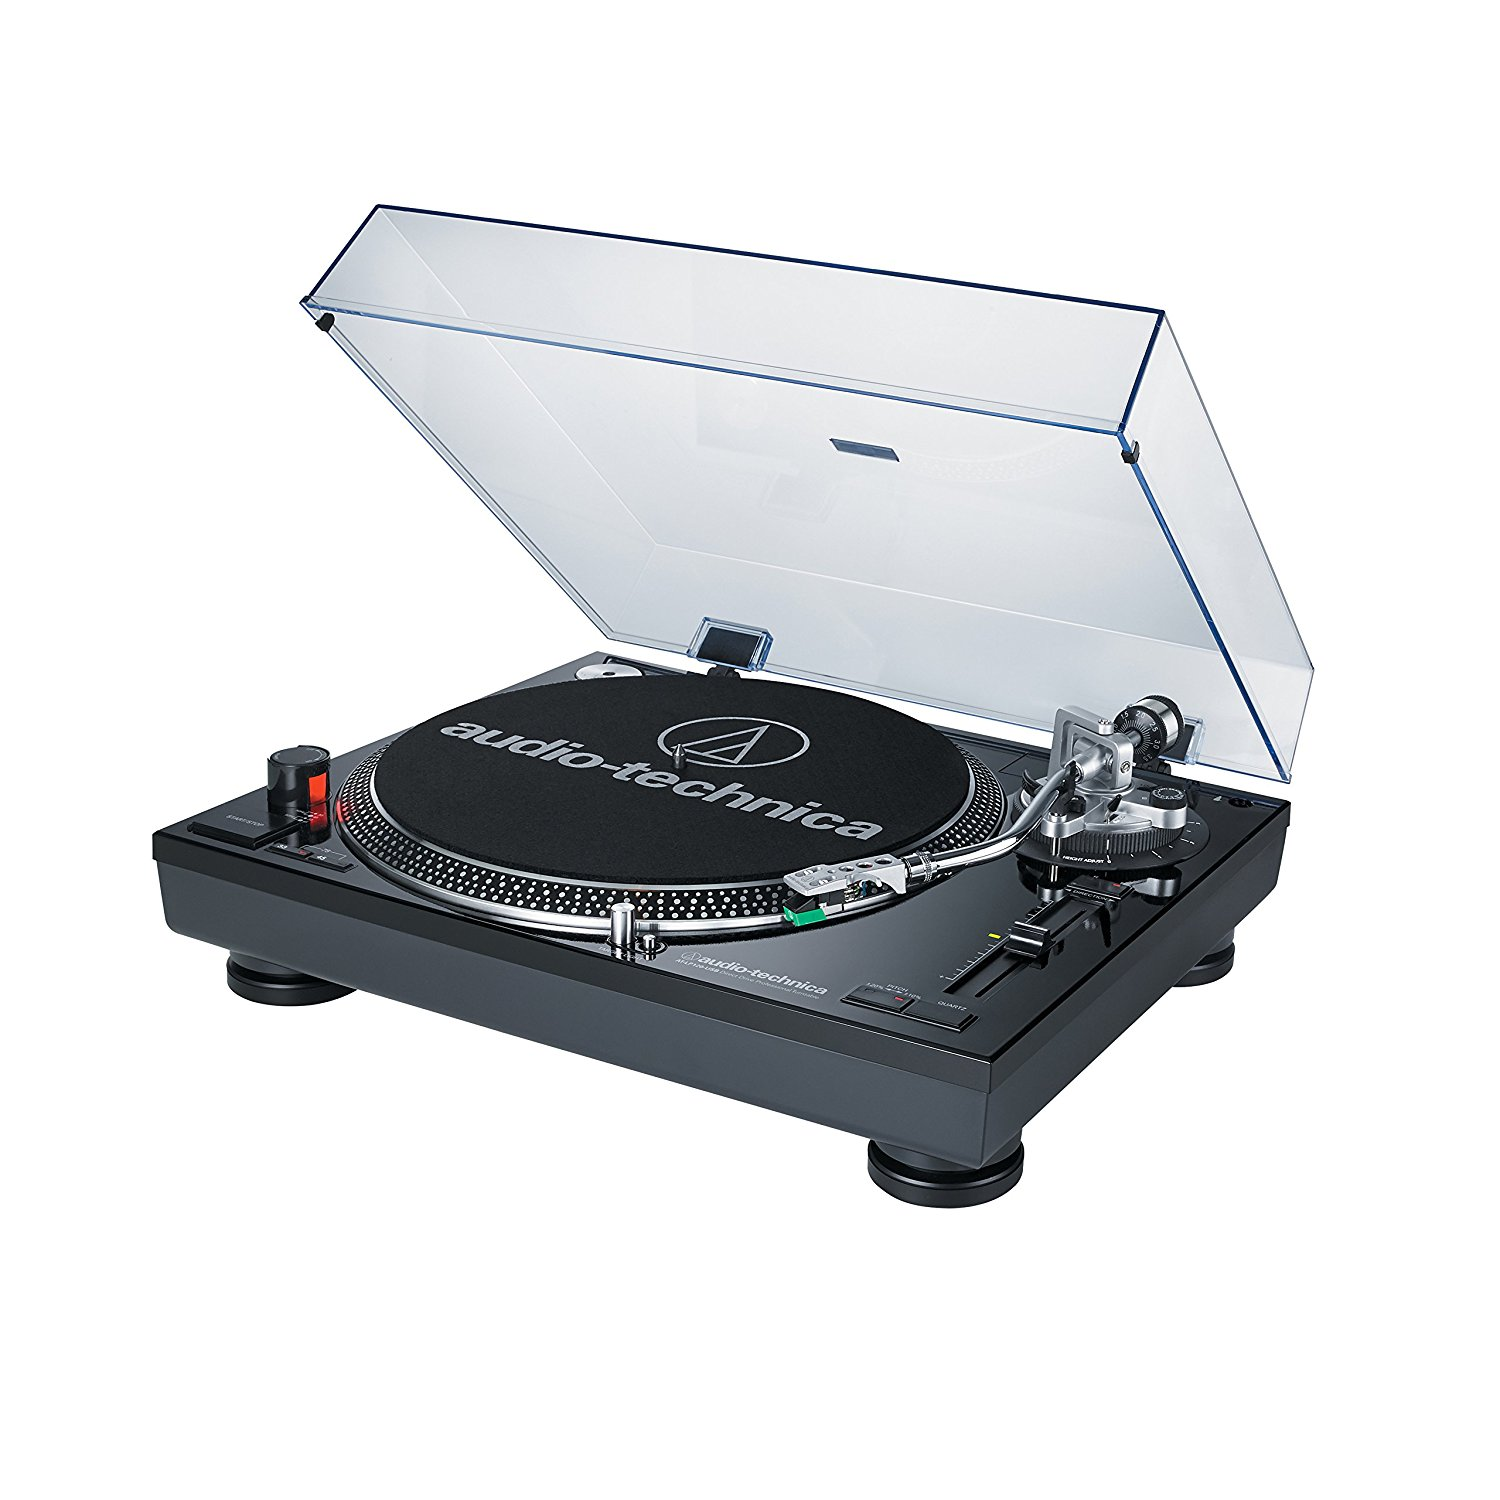 Audio-Technica AT-LP120BK-USB Direct-Drive Professional USB & Analog Stereo Turntable... by Audio-Technica